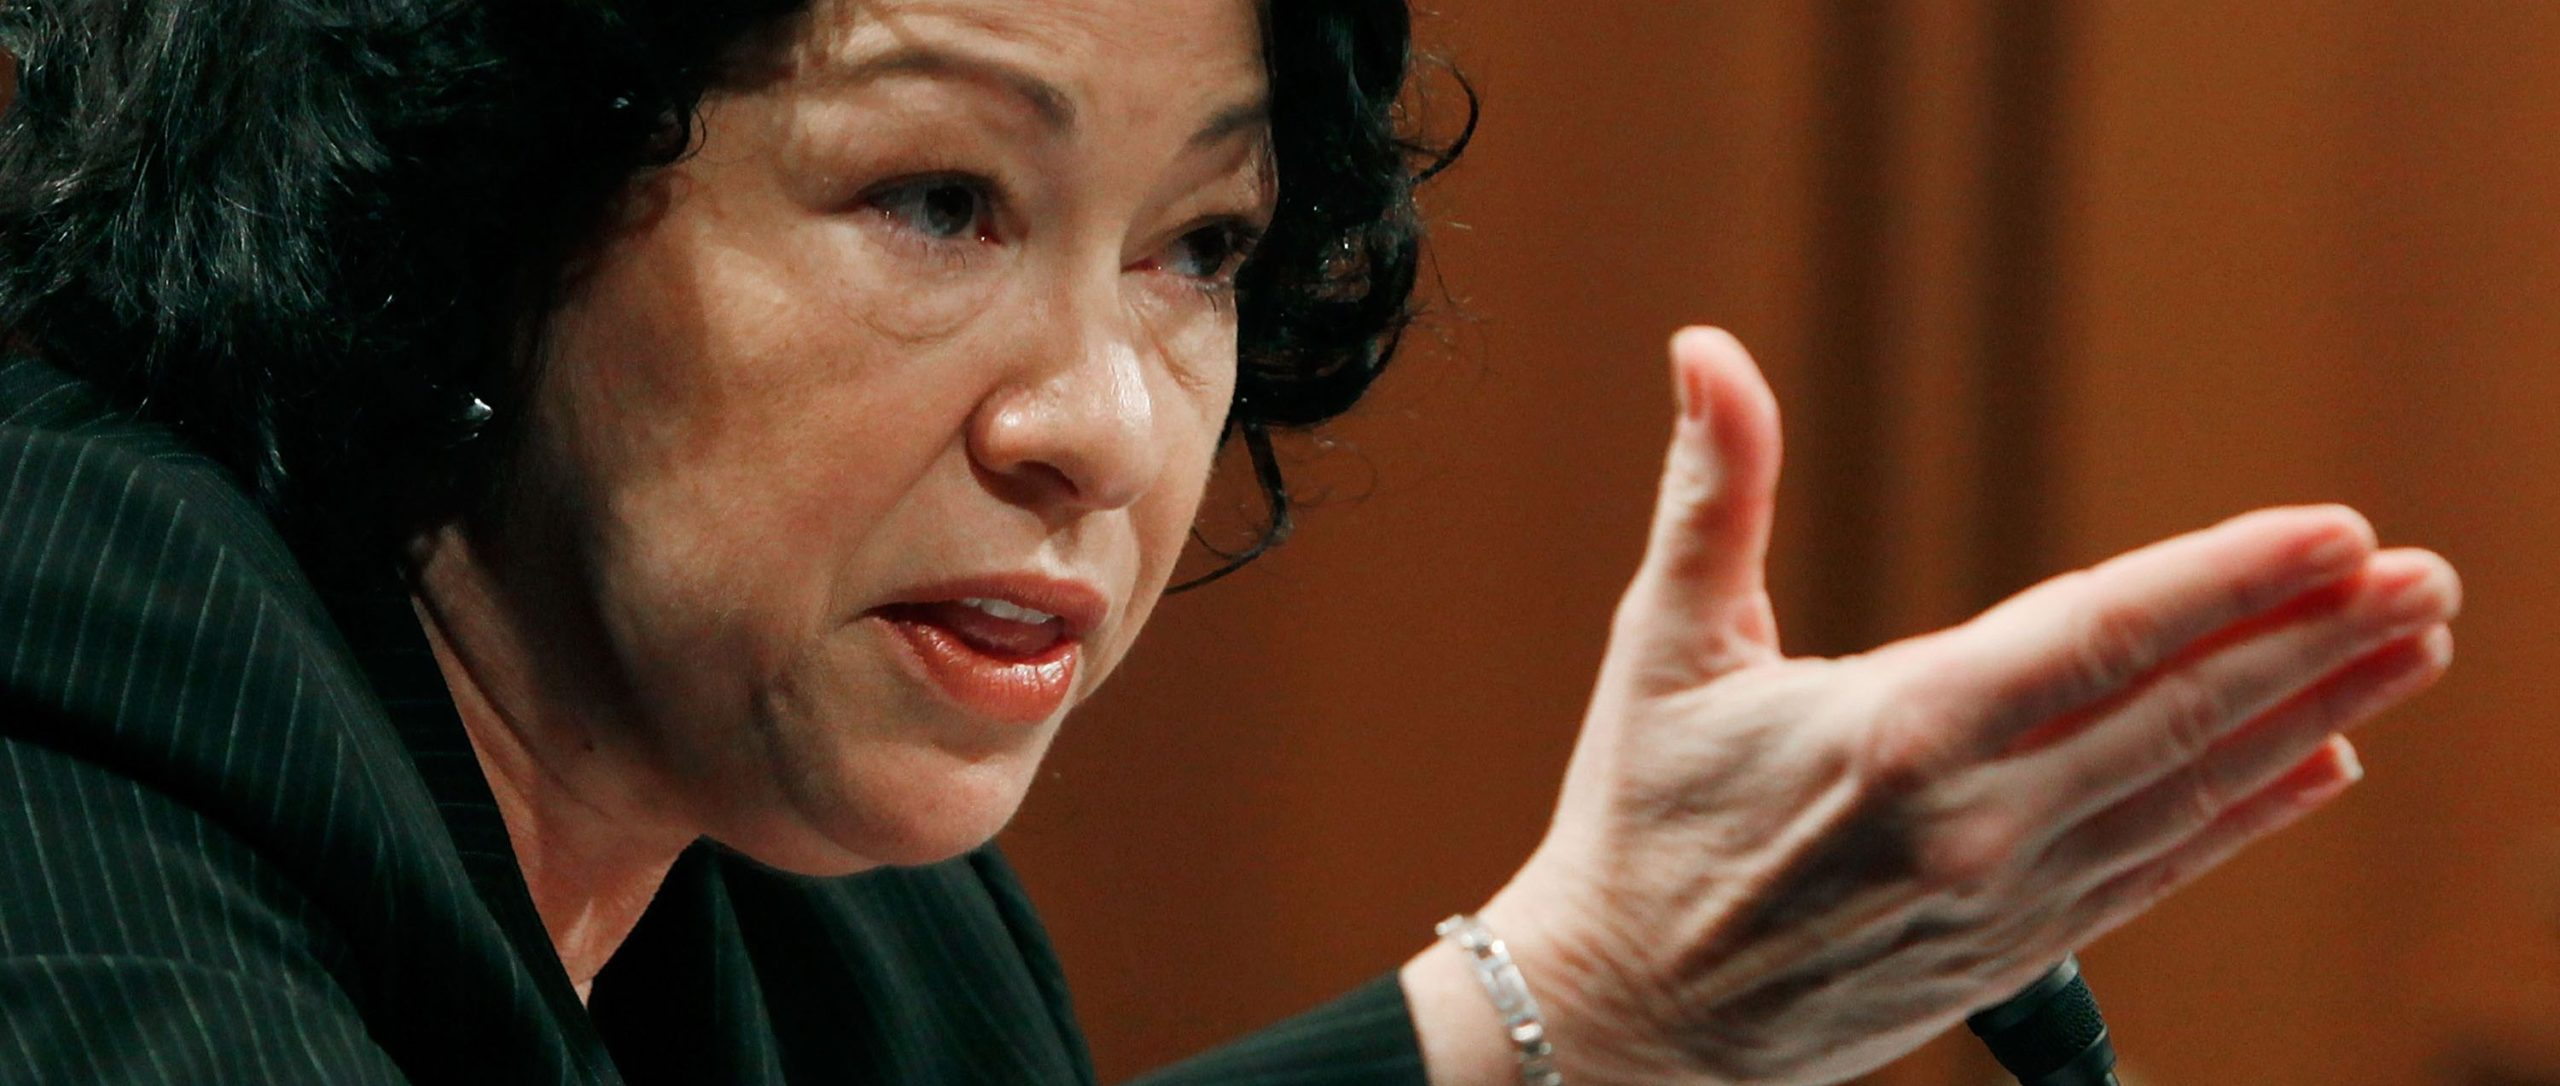 Supreme Court Justice Sonia Sotomayor